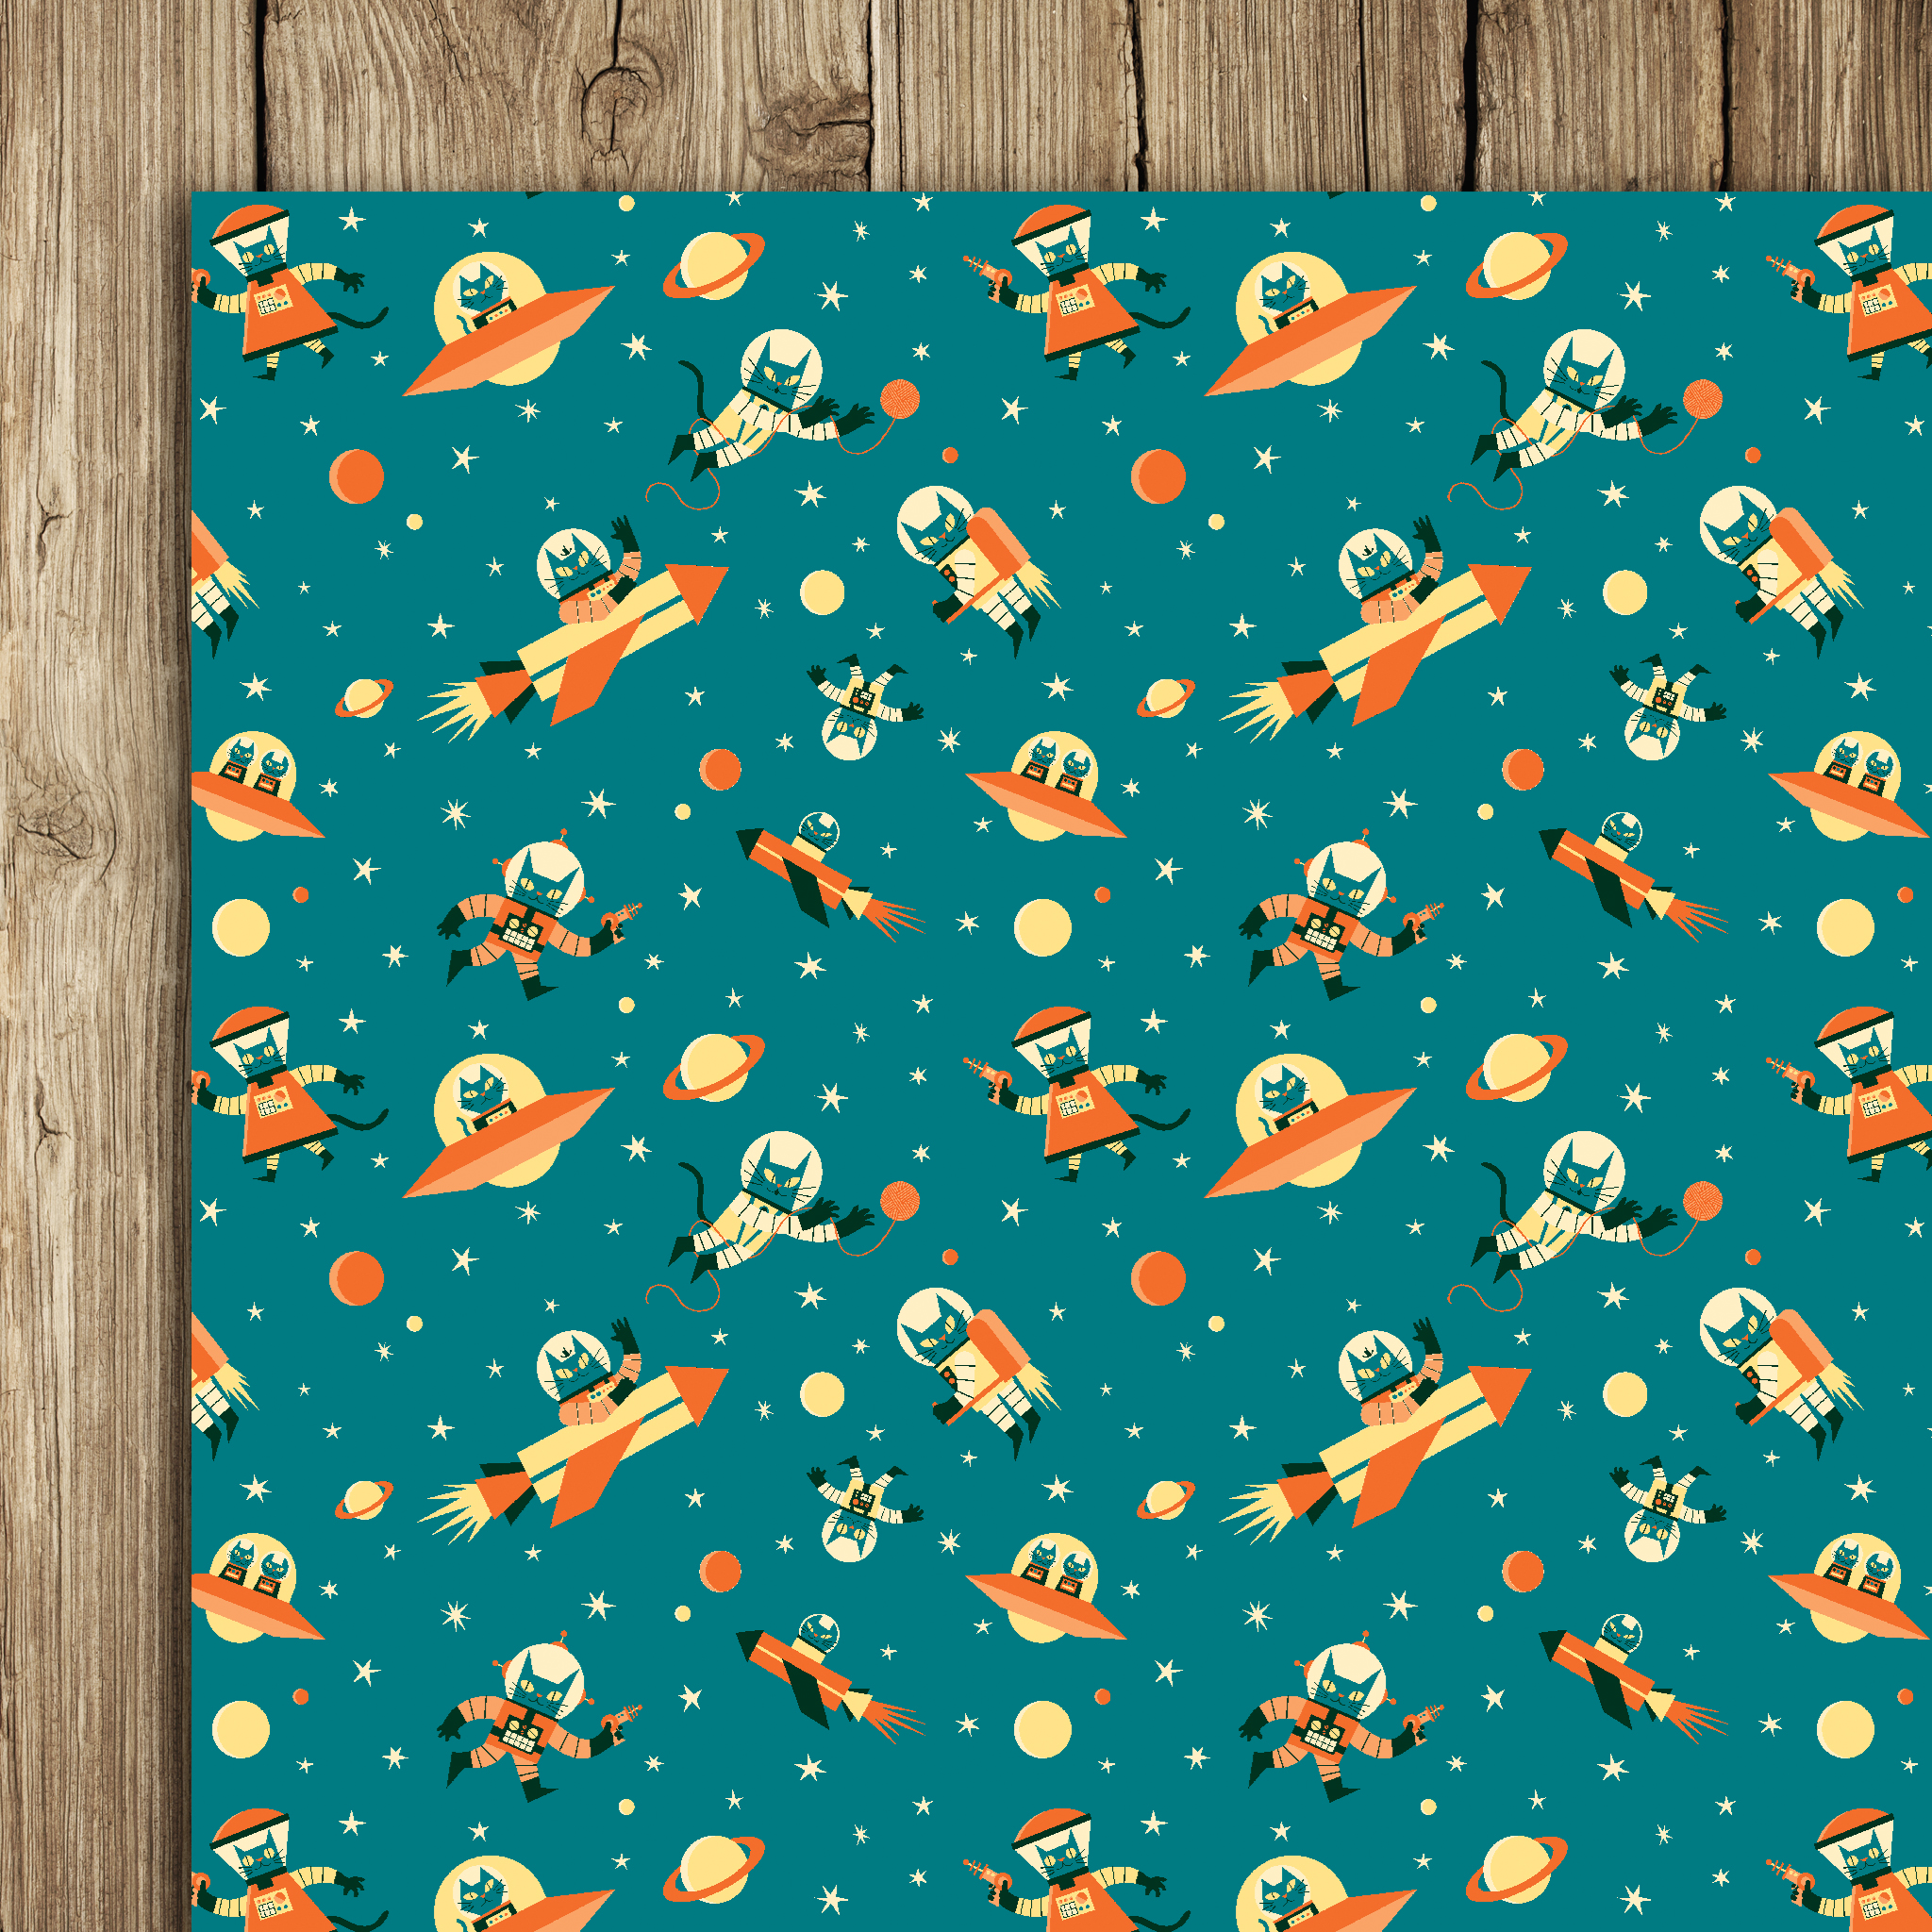 Astro Cat Wrap (5 sheets)